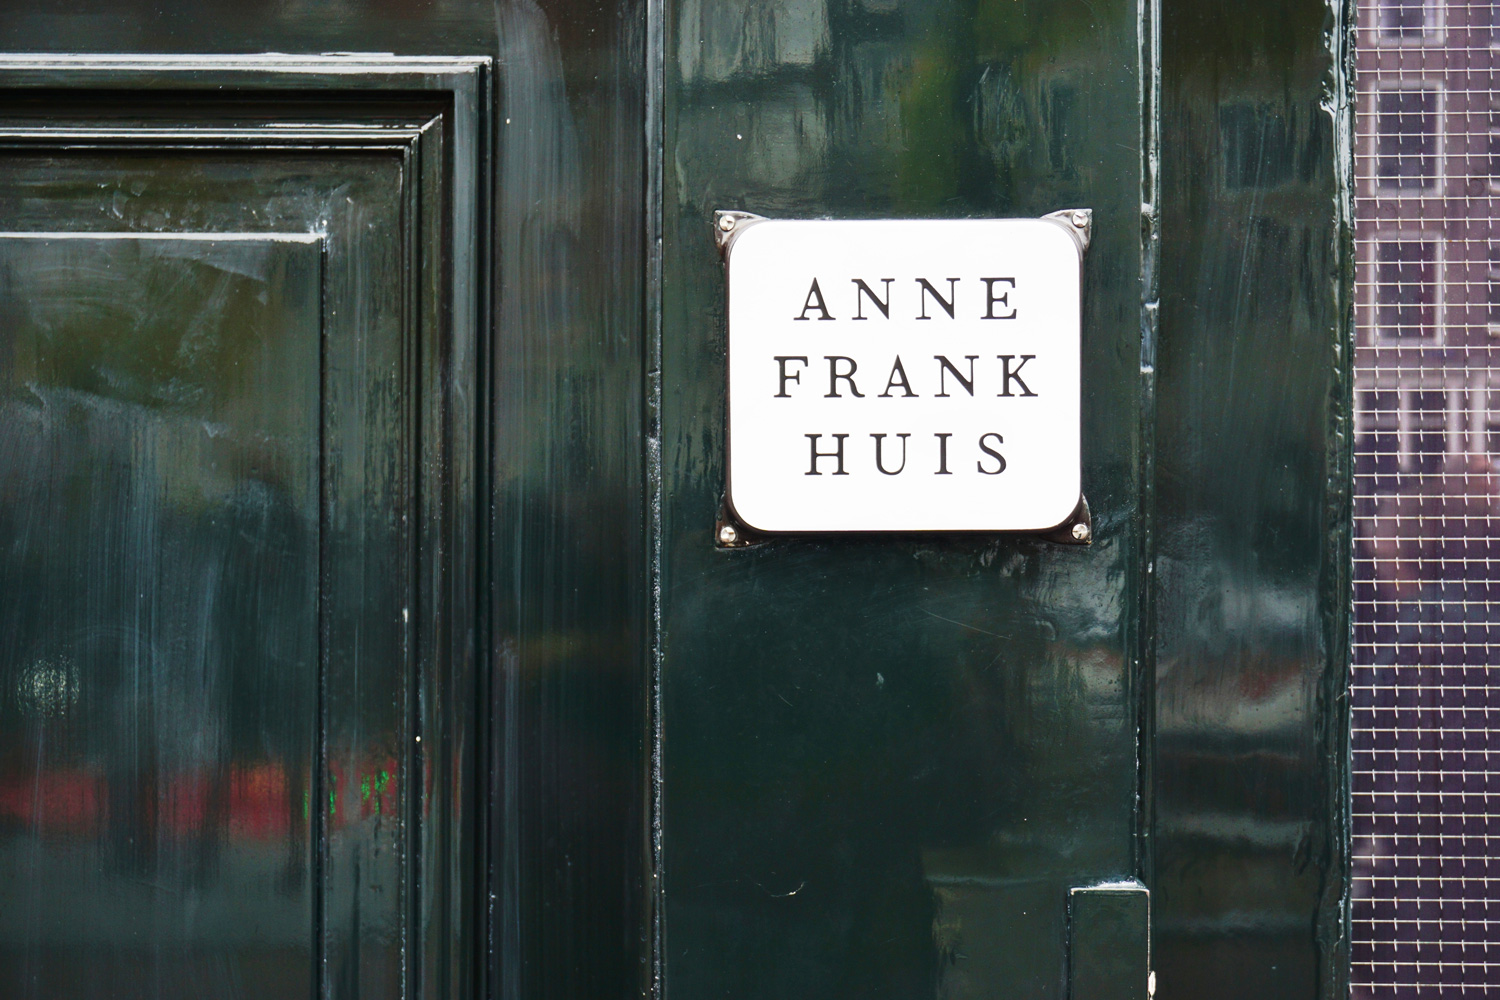 The Anne Frank house located on Prinsengracht in Amsterdam